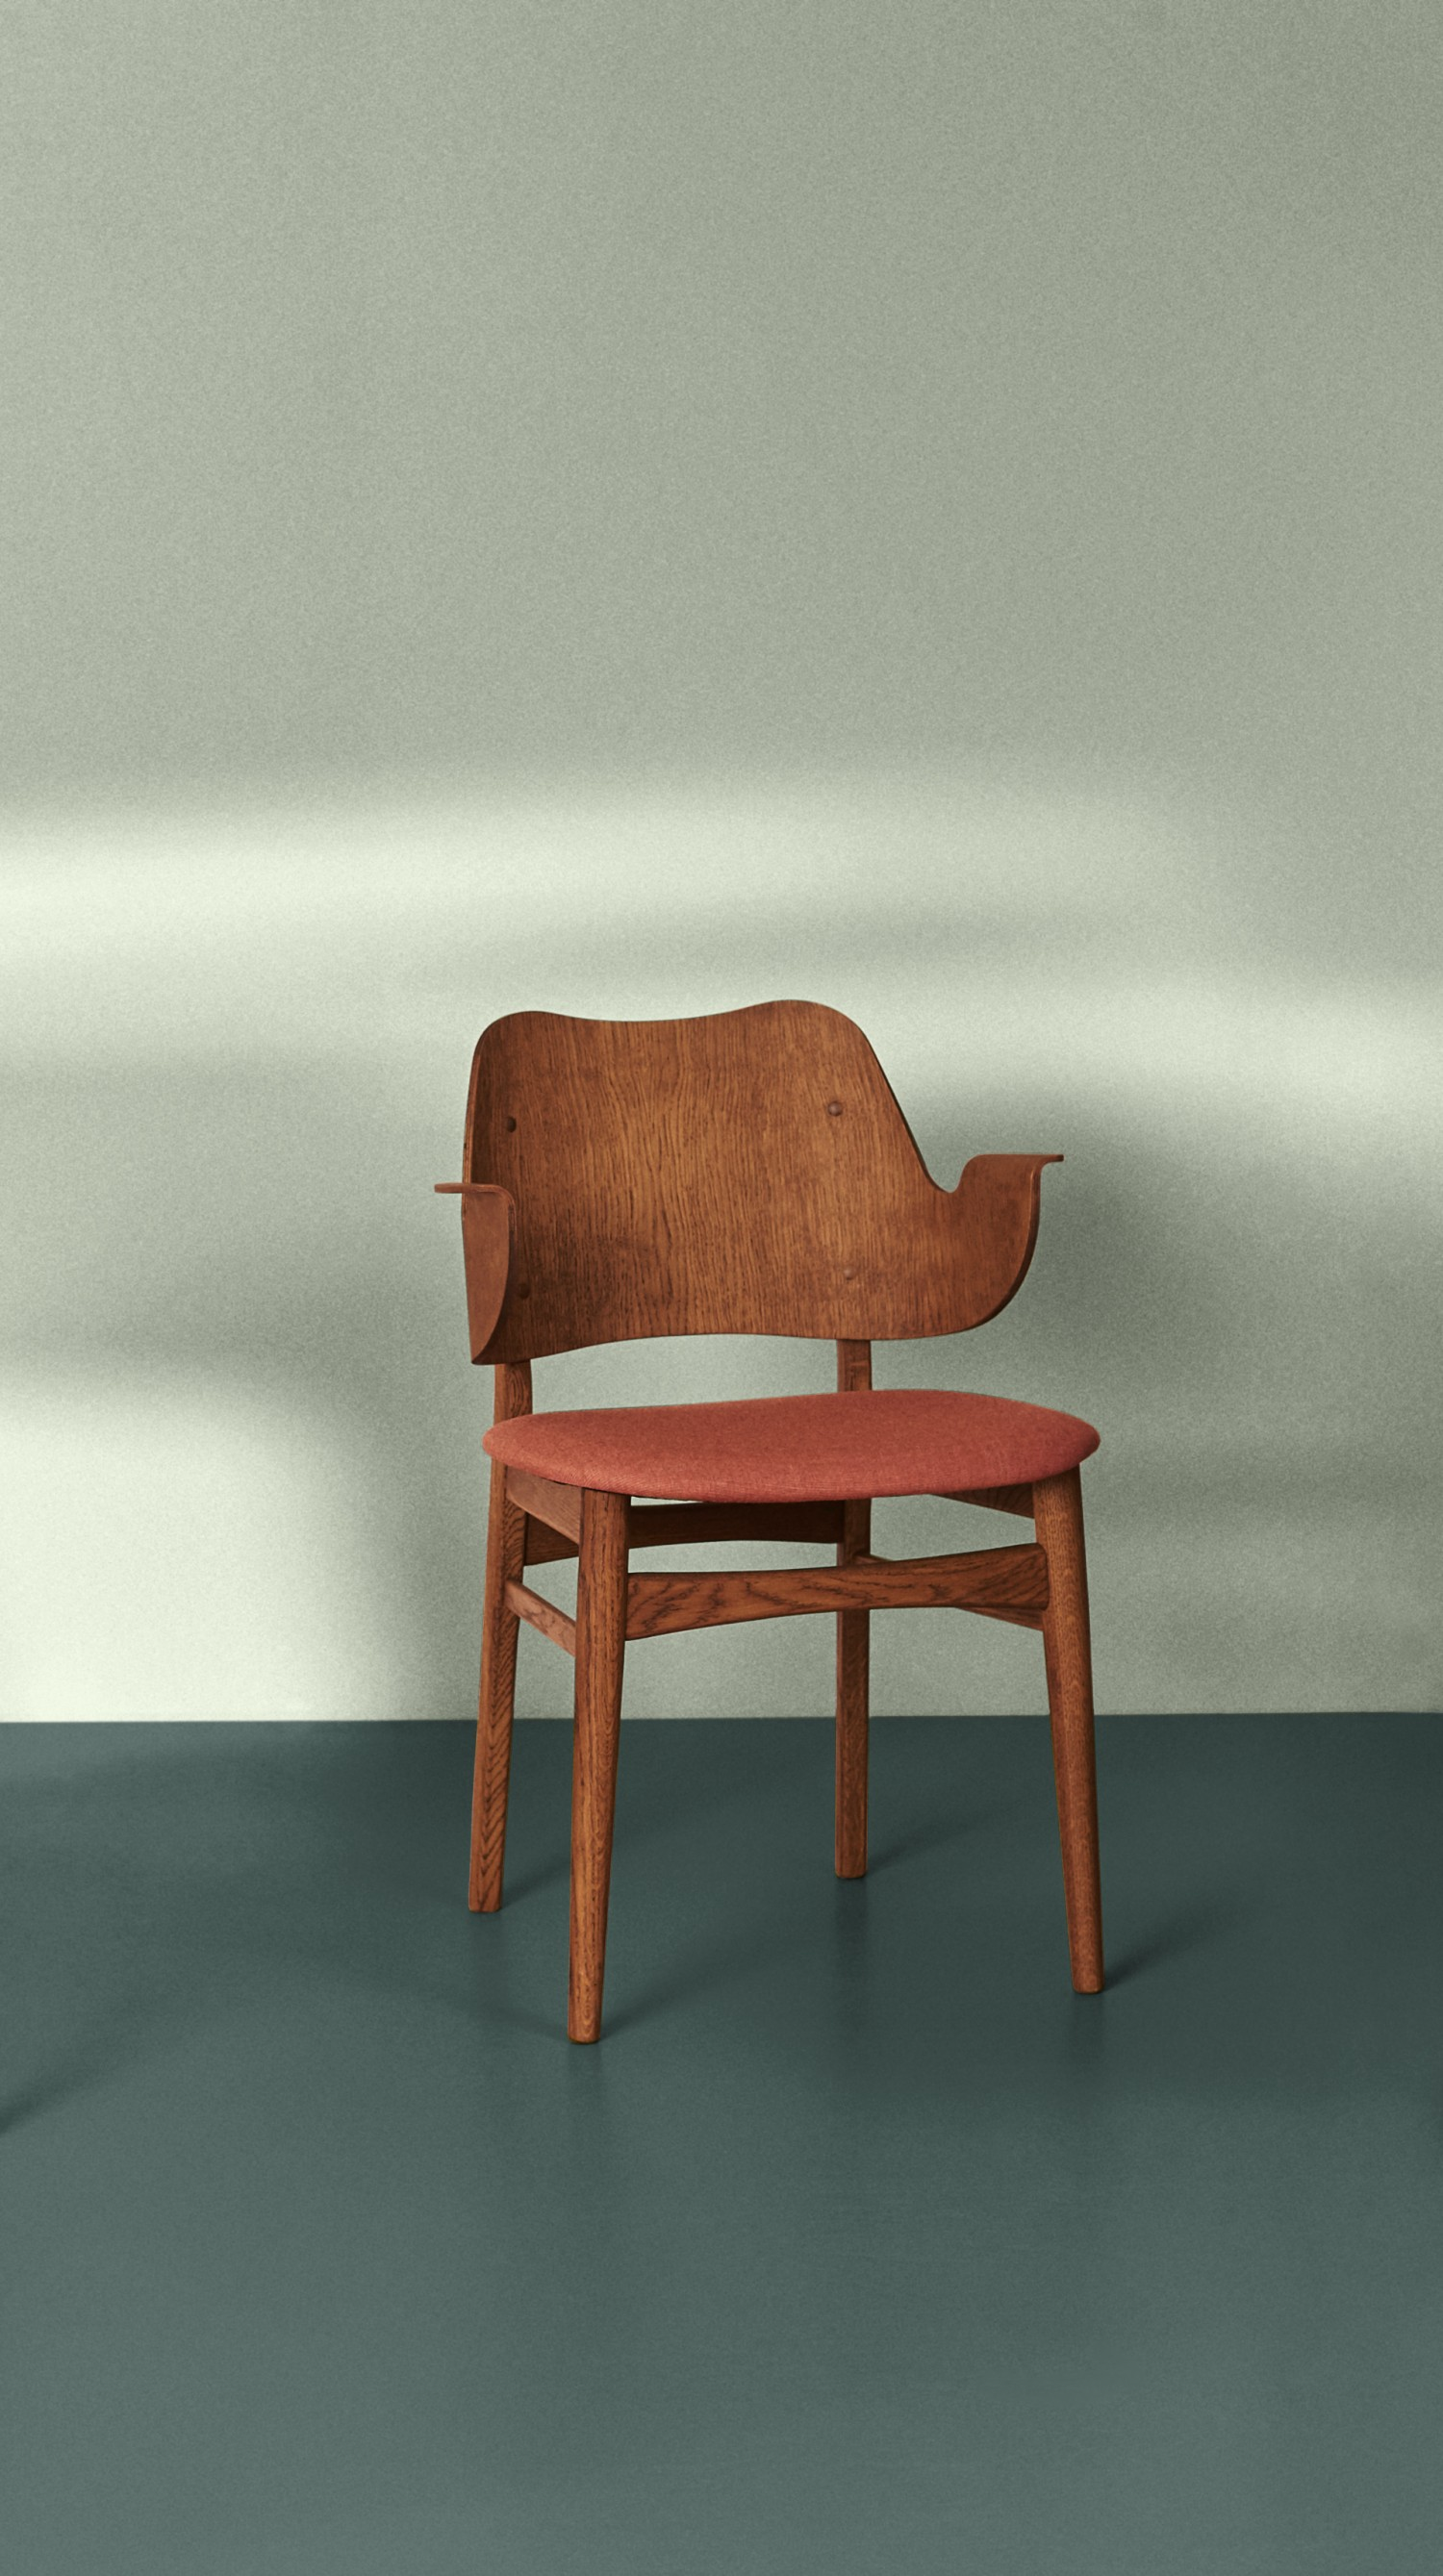 2405008-warmnordic-furniture-gesture-diningchairs-teak-stained-seat-peachy-pink-back-teak-stained-vgreen